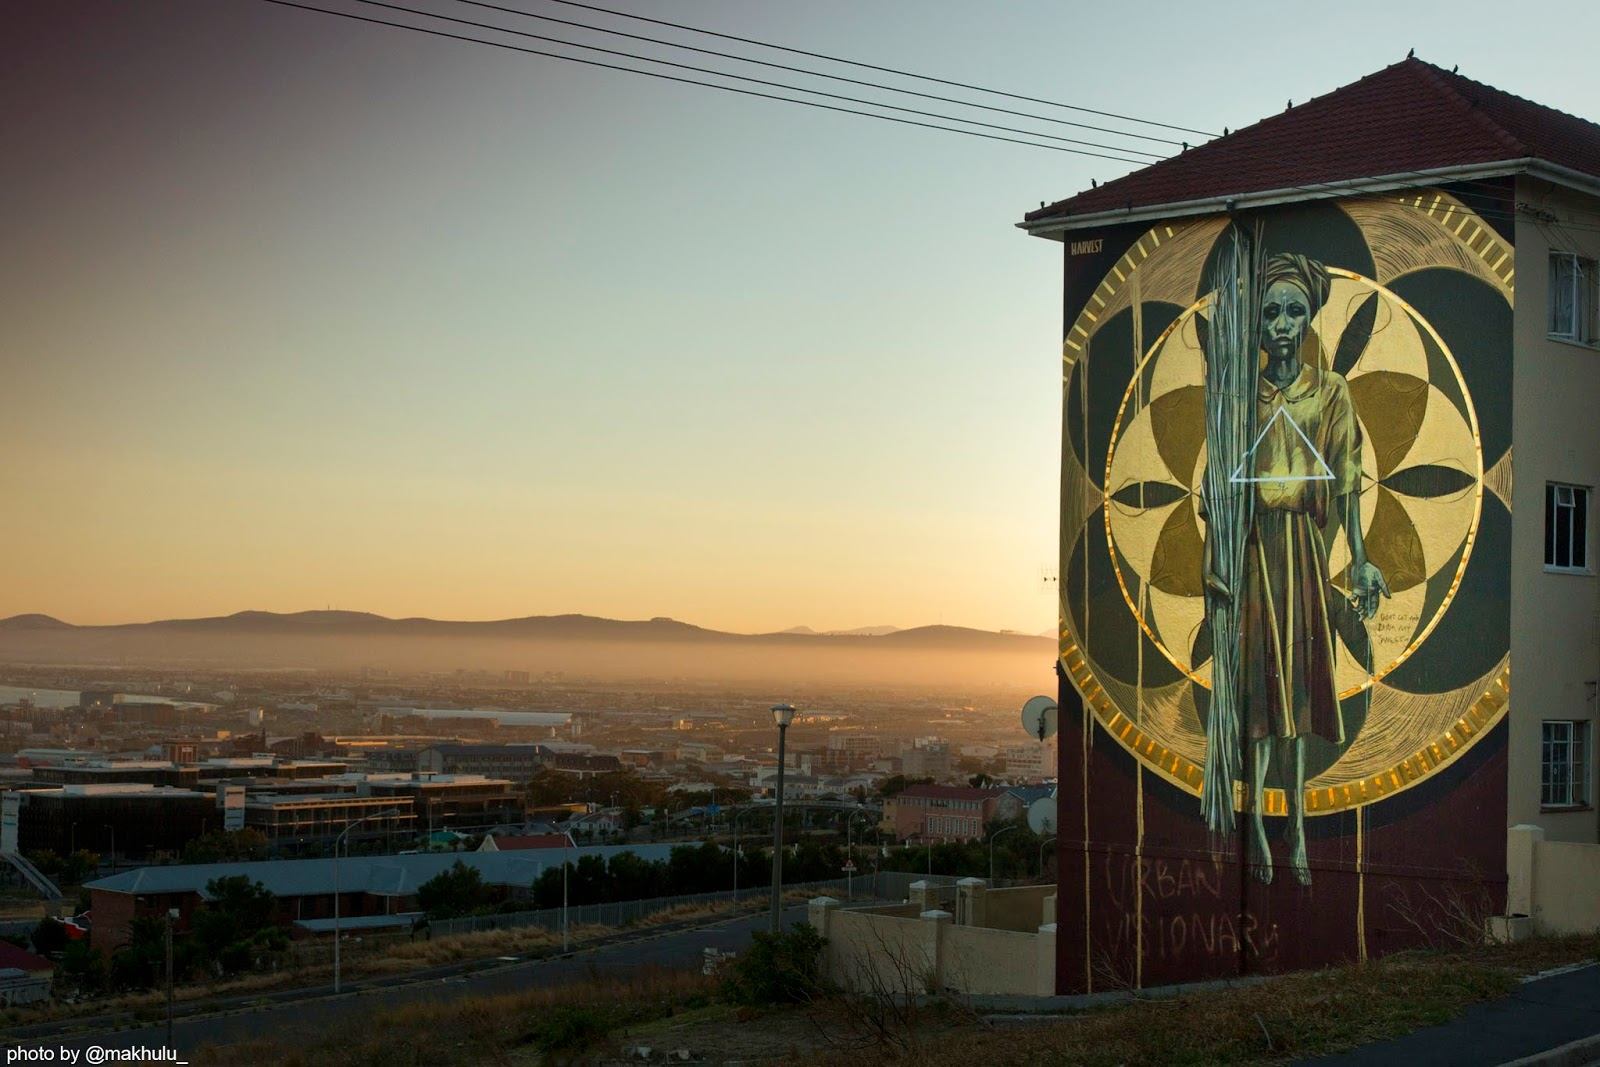 Design Indaba Trust, Faith47 and Thingking have teamed up to create a mural that seeks to create a community level change through the duality of art-based social impact.